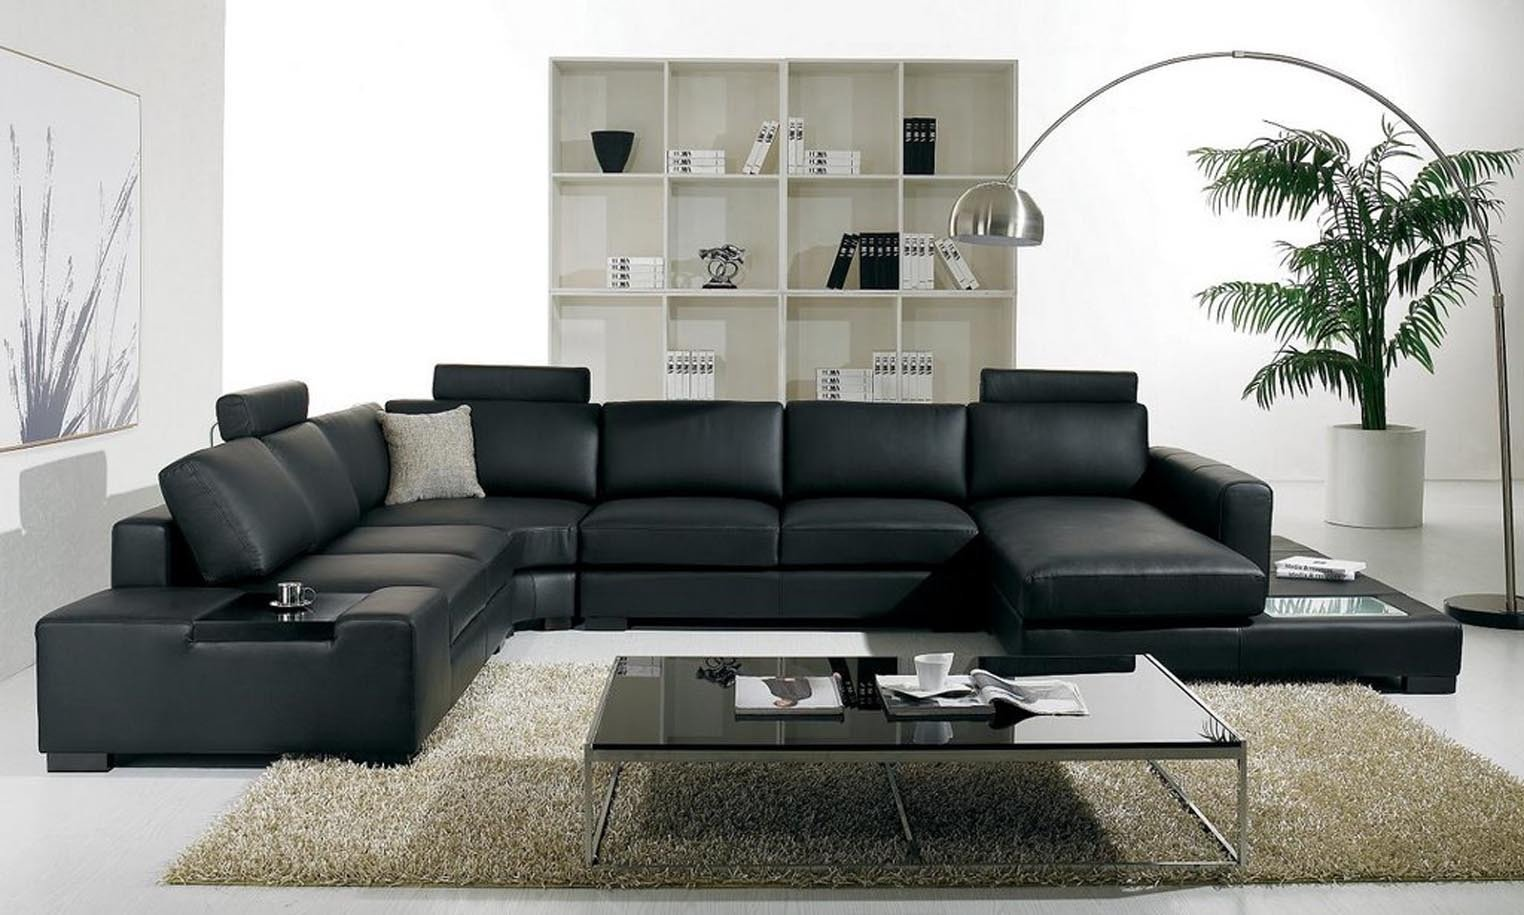 Living Room Decor with Sectional Awesome Simple Interior Design Tips to Make Over Your Living Room